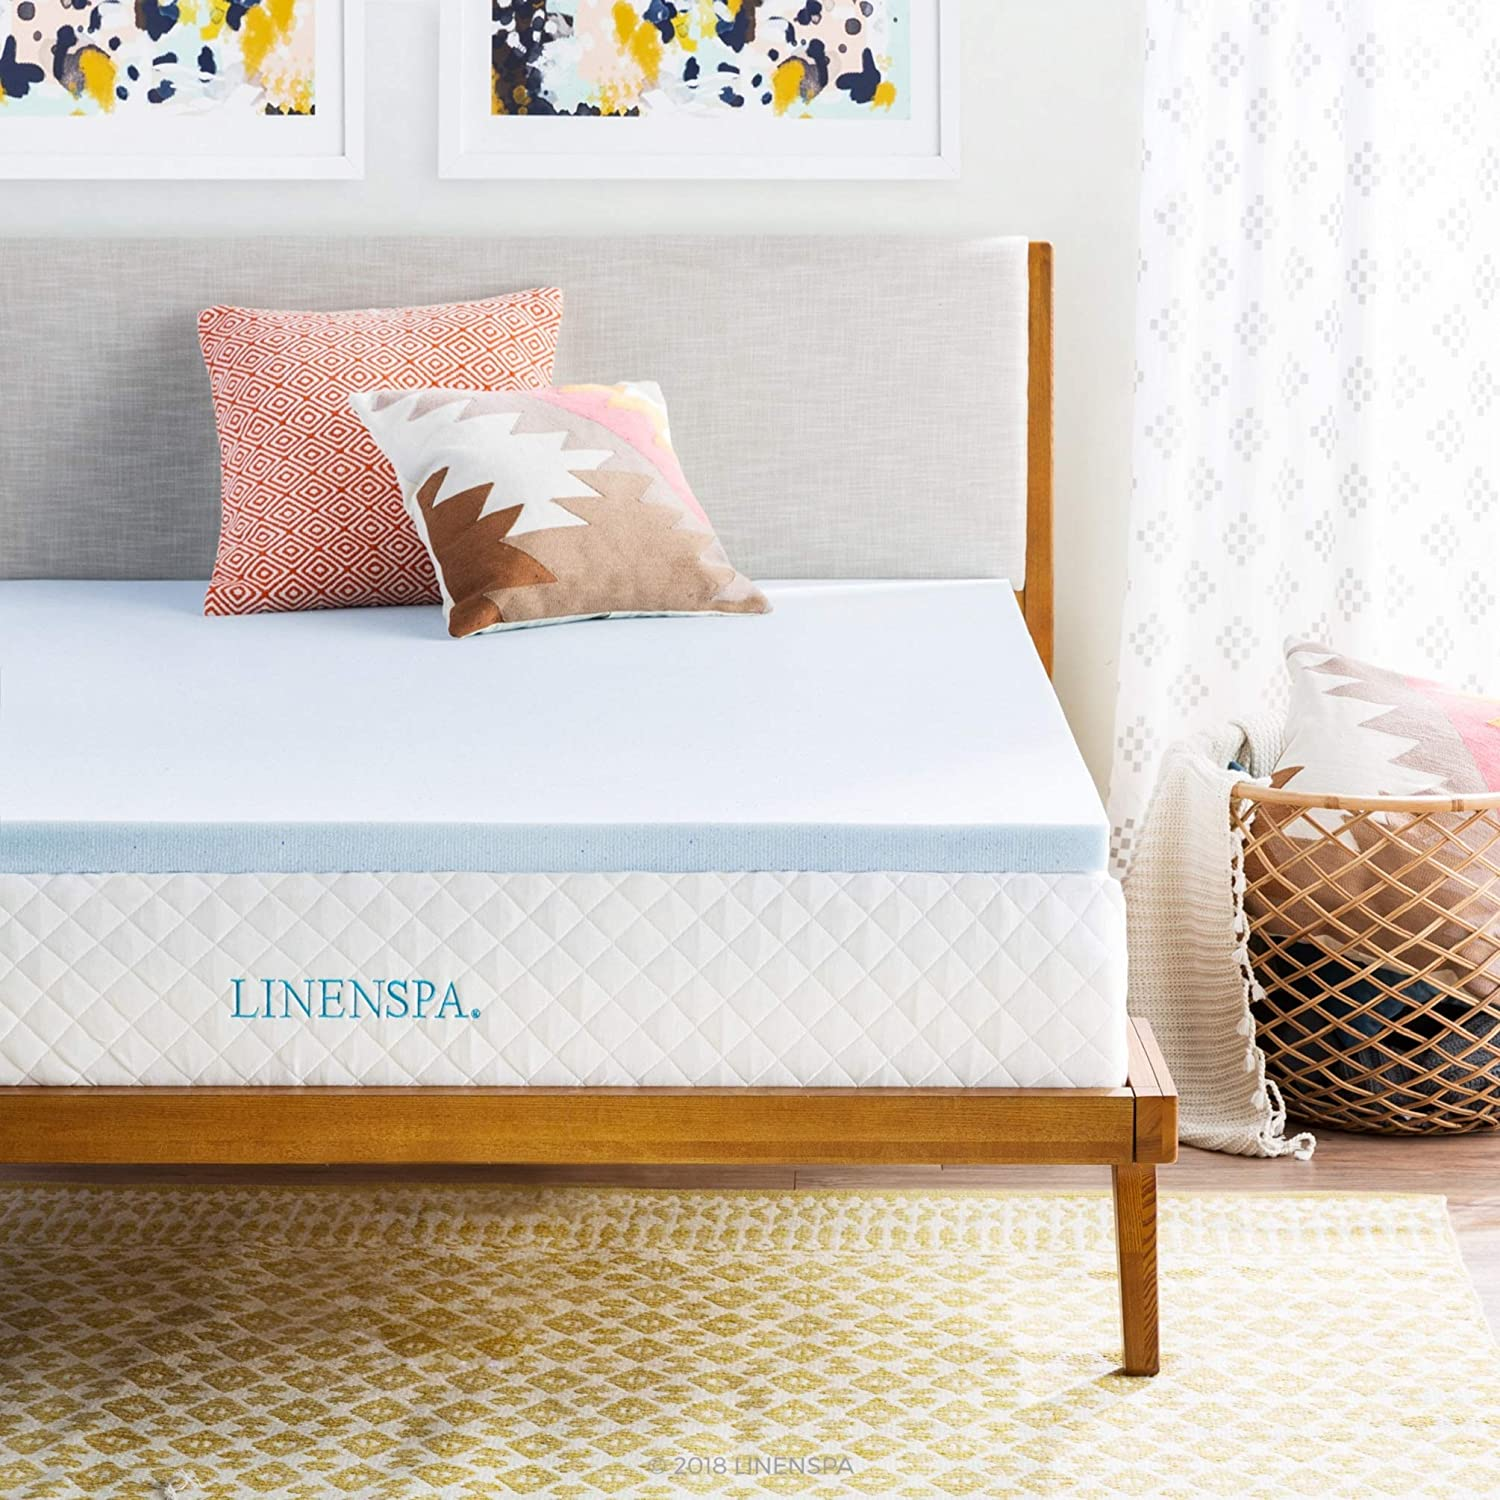 "Linenspa 2"" Gel Infused Memory Foam Mattress Topper, Twin XL"